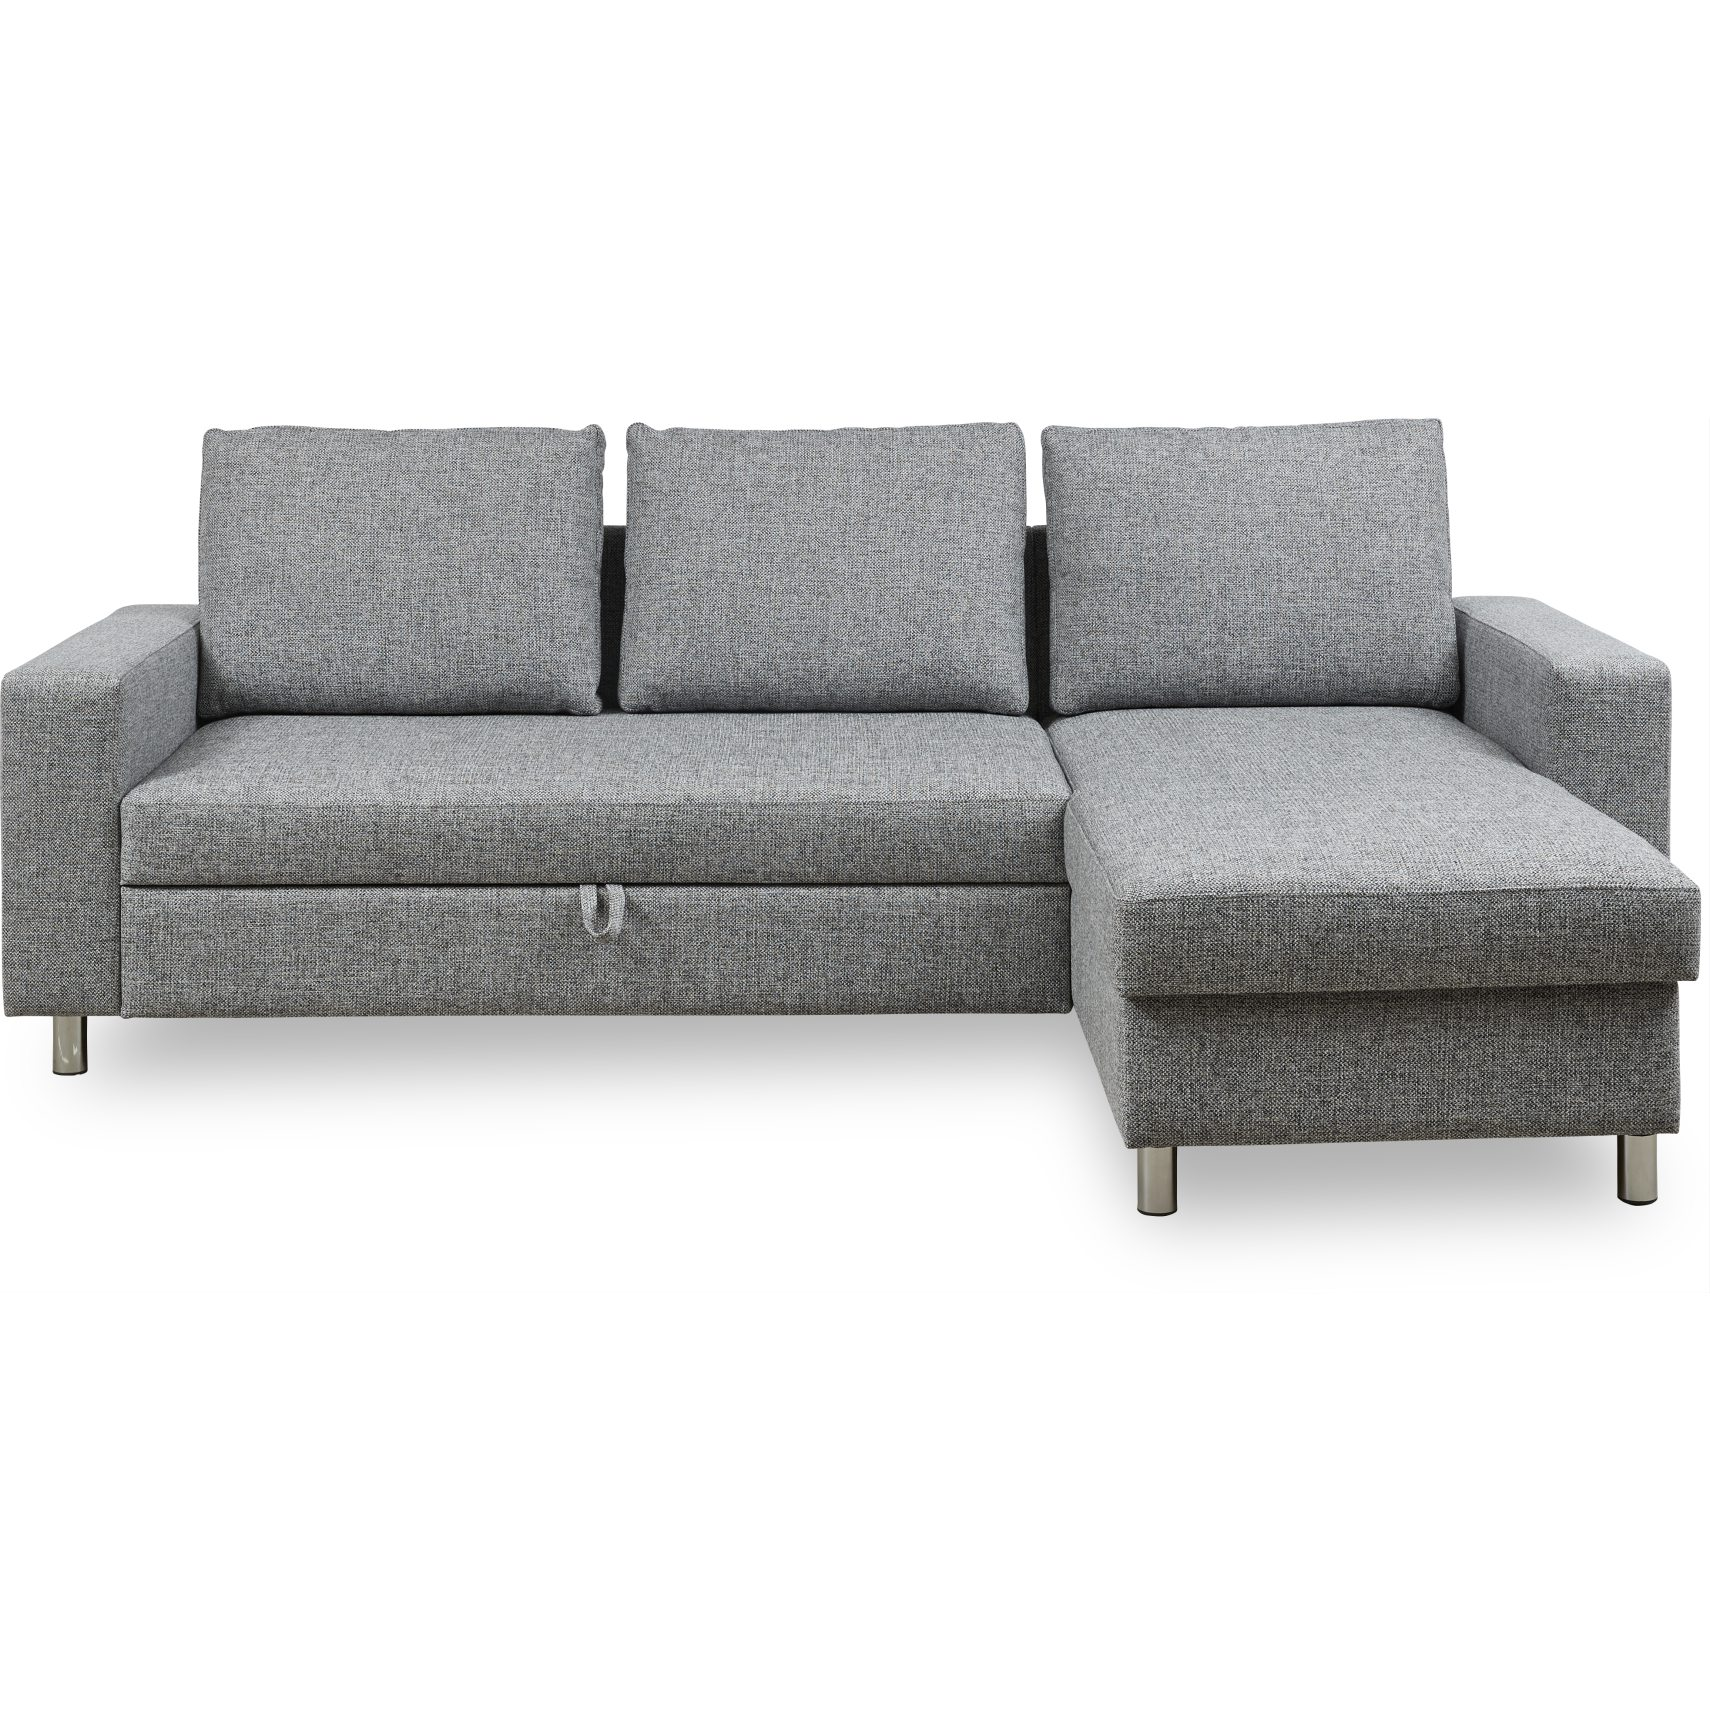 Devon Flex 260 Sovesofa - Riviera 53 Light Grey stof, Armlæn 1+1 og S: Pocket R: Dun/fiberkugler